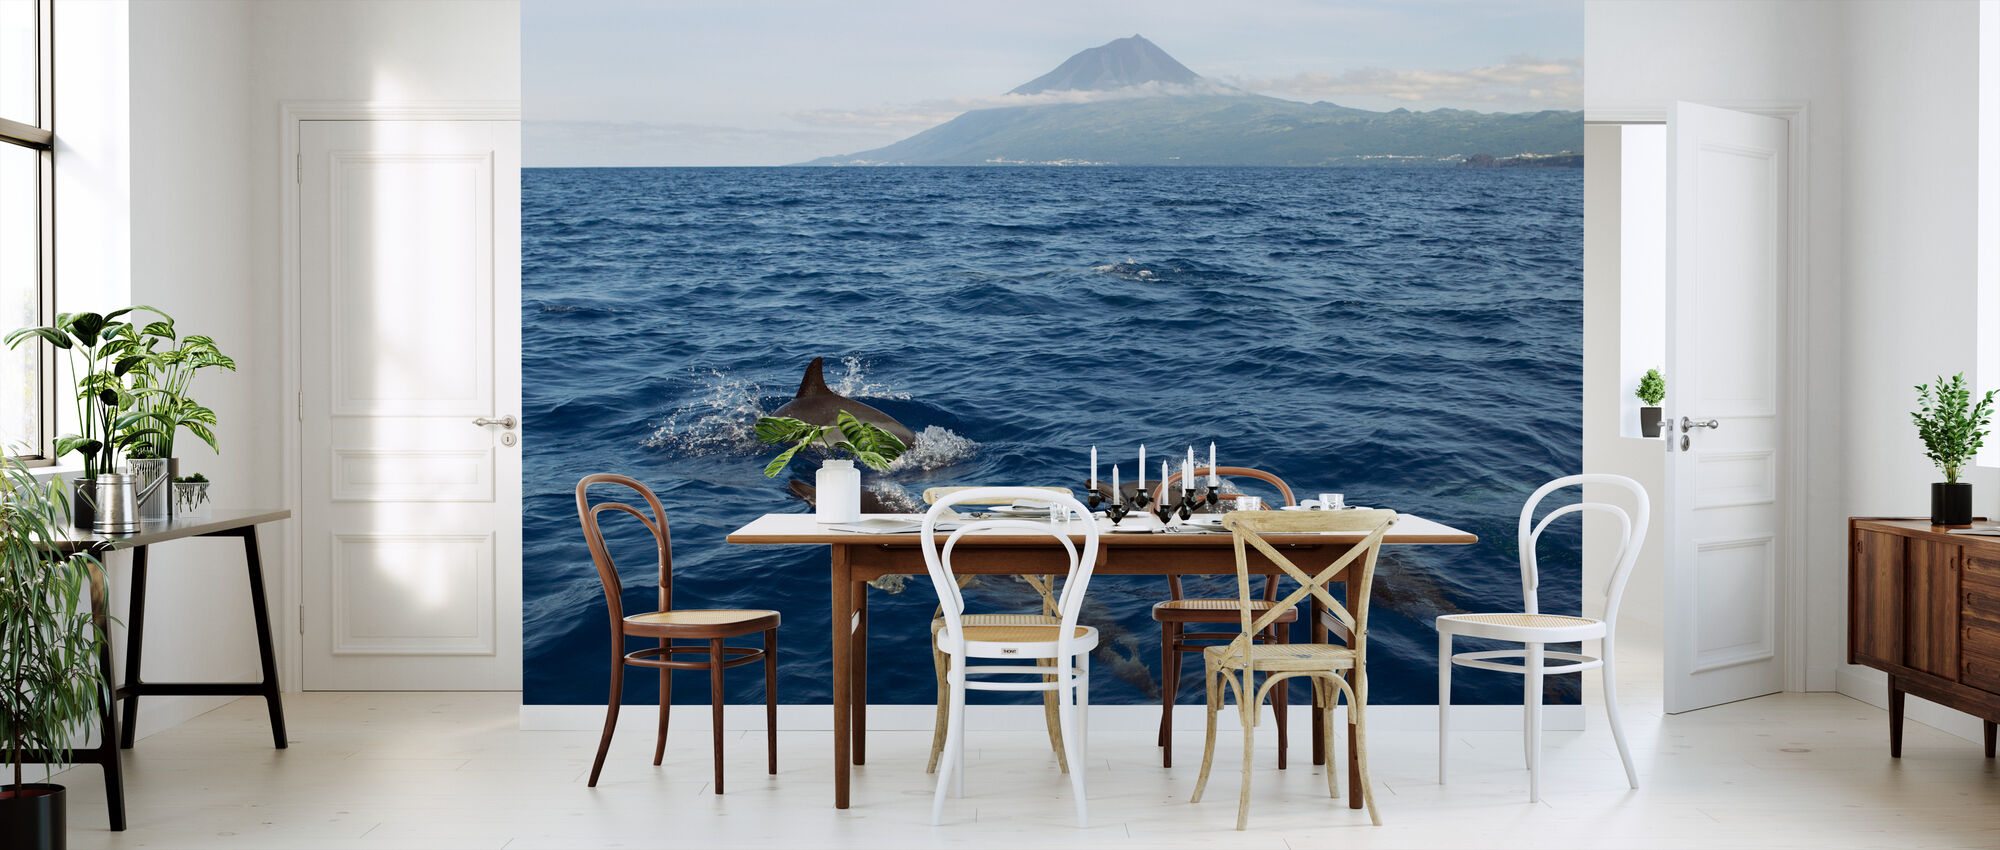 Dolphins in the Azores - Wallpaper - Kitchen